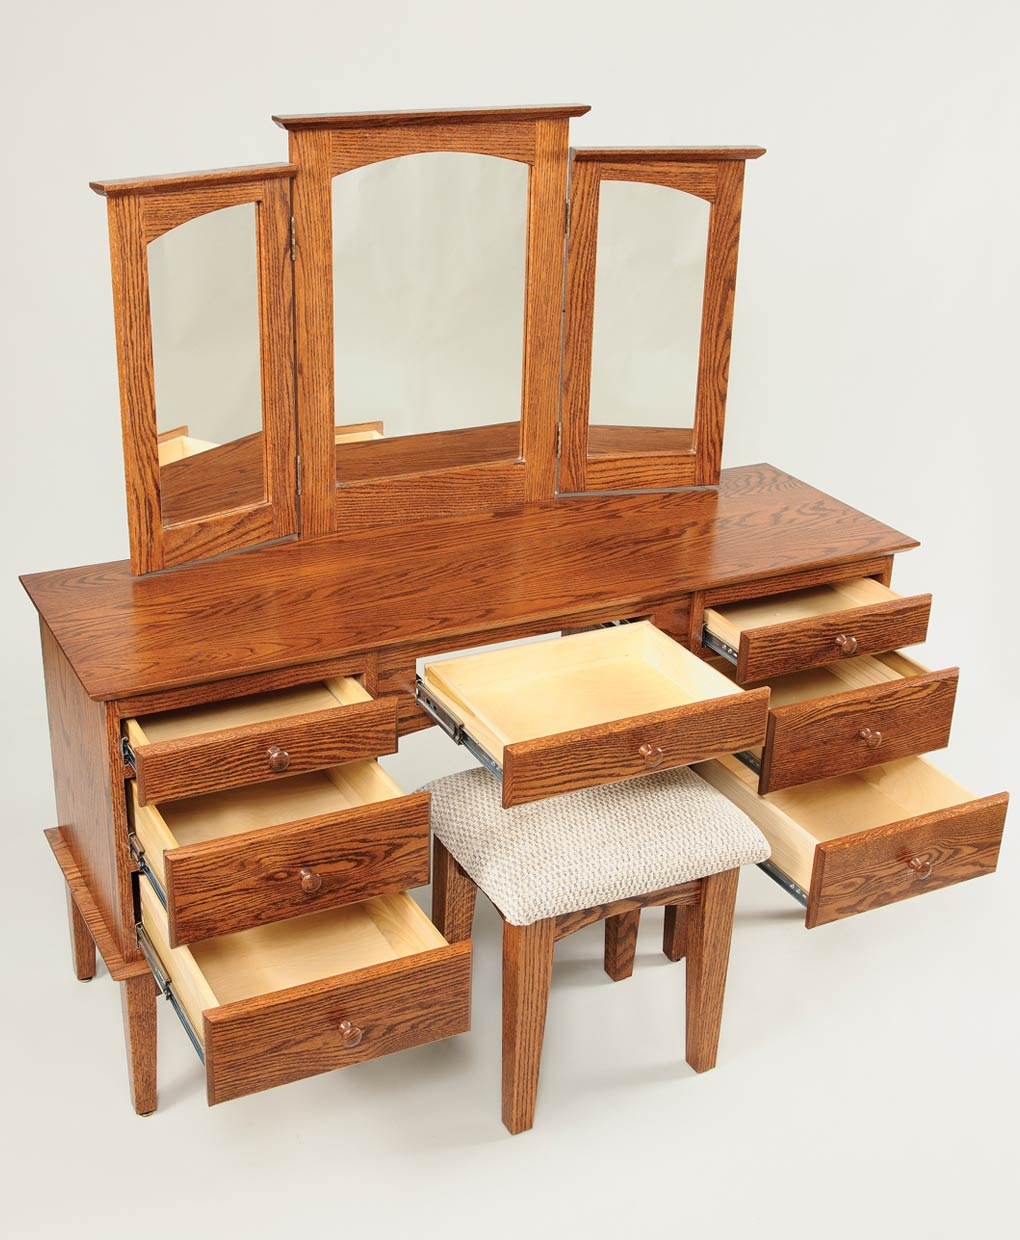 Shaker dressing table amish direct furniture for Vanity dressing table